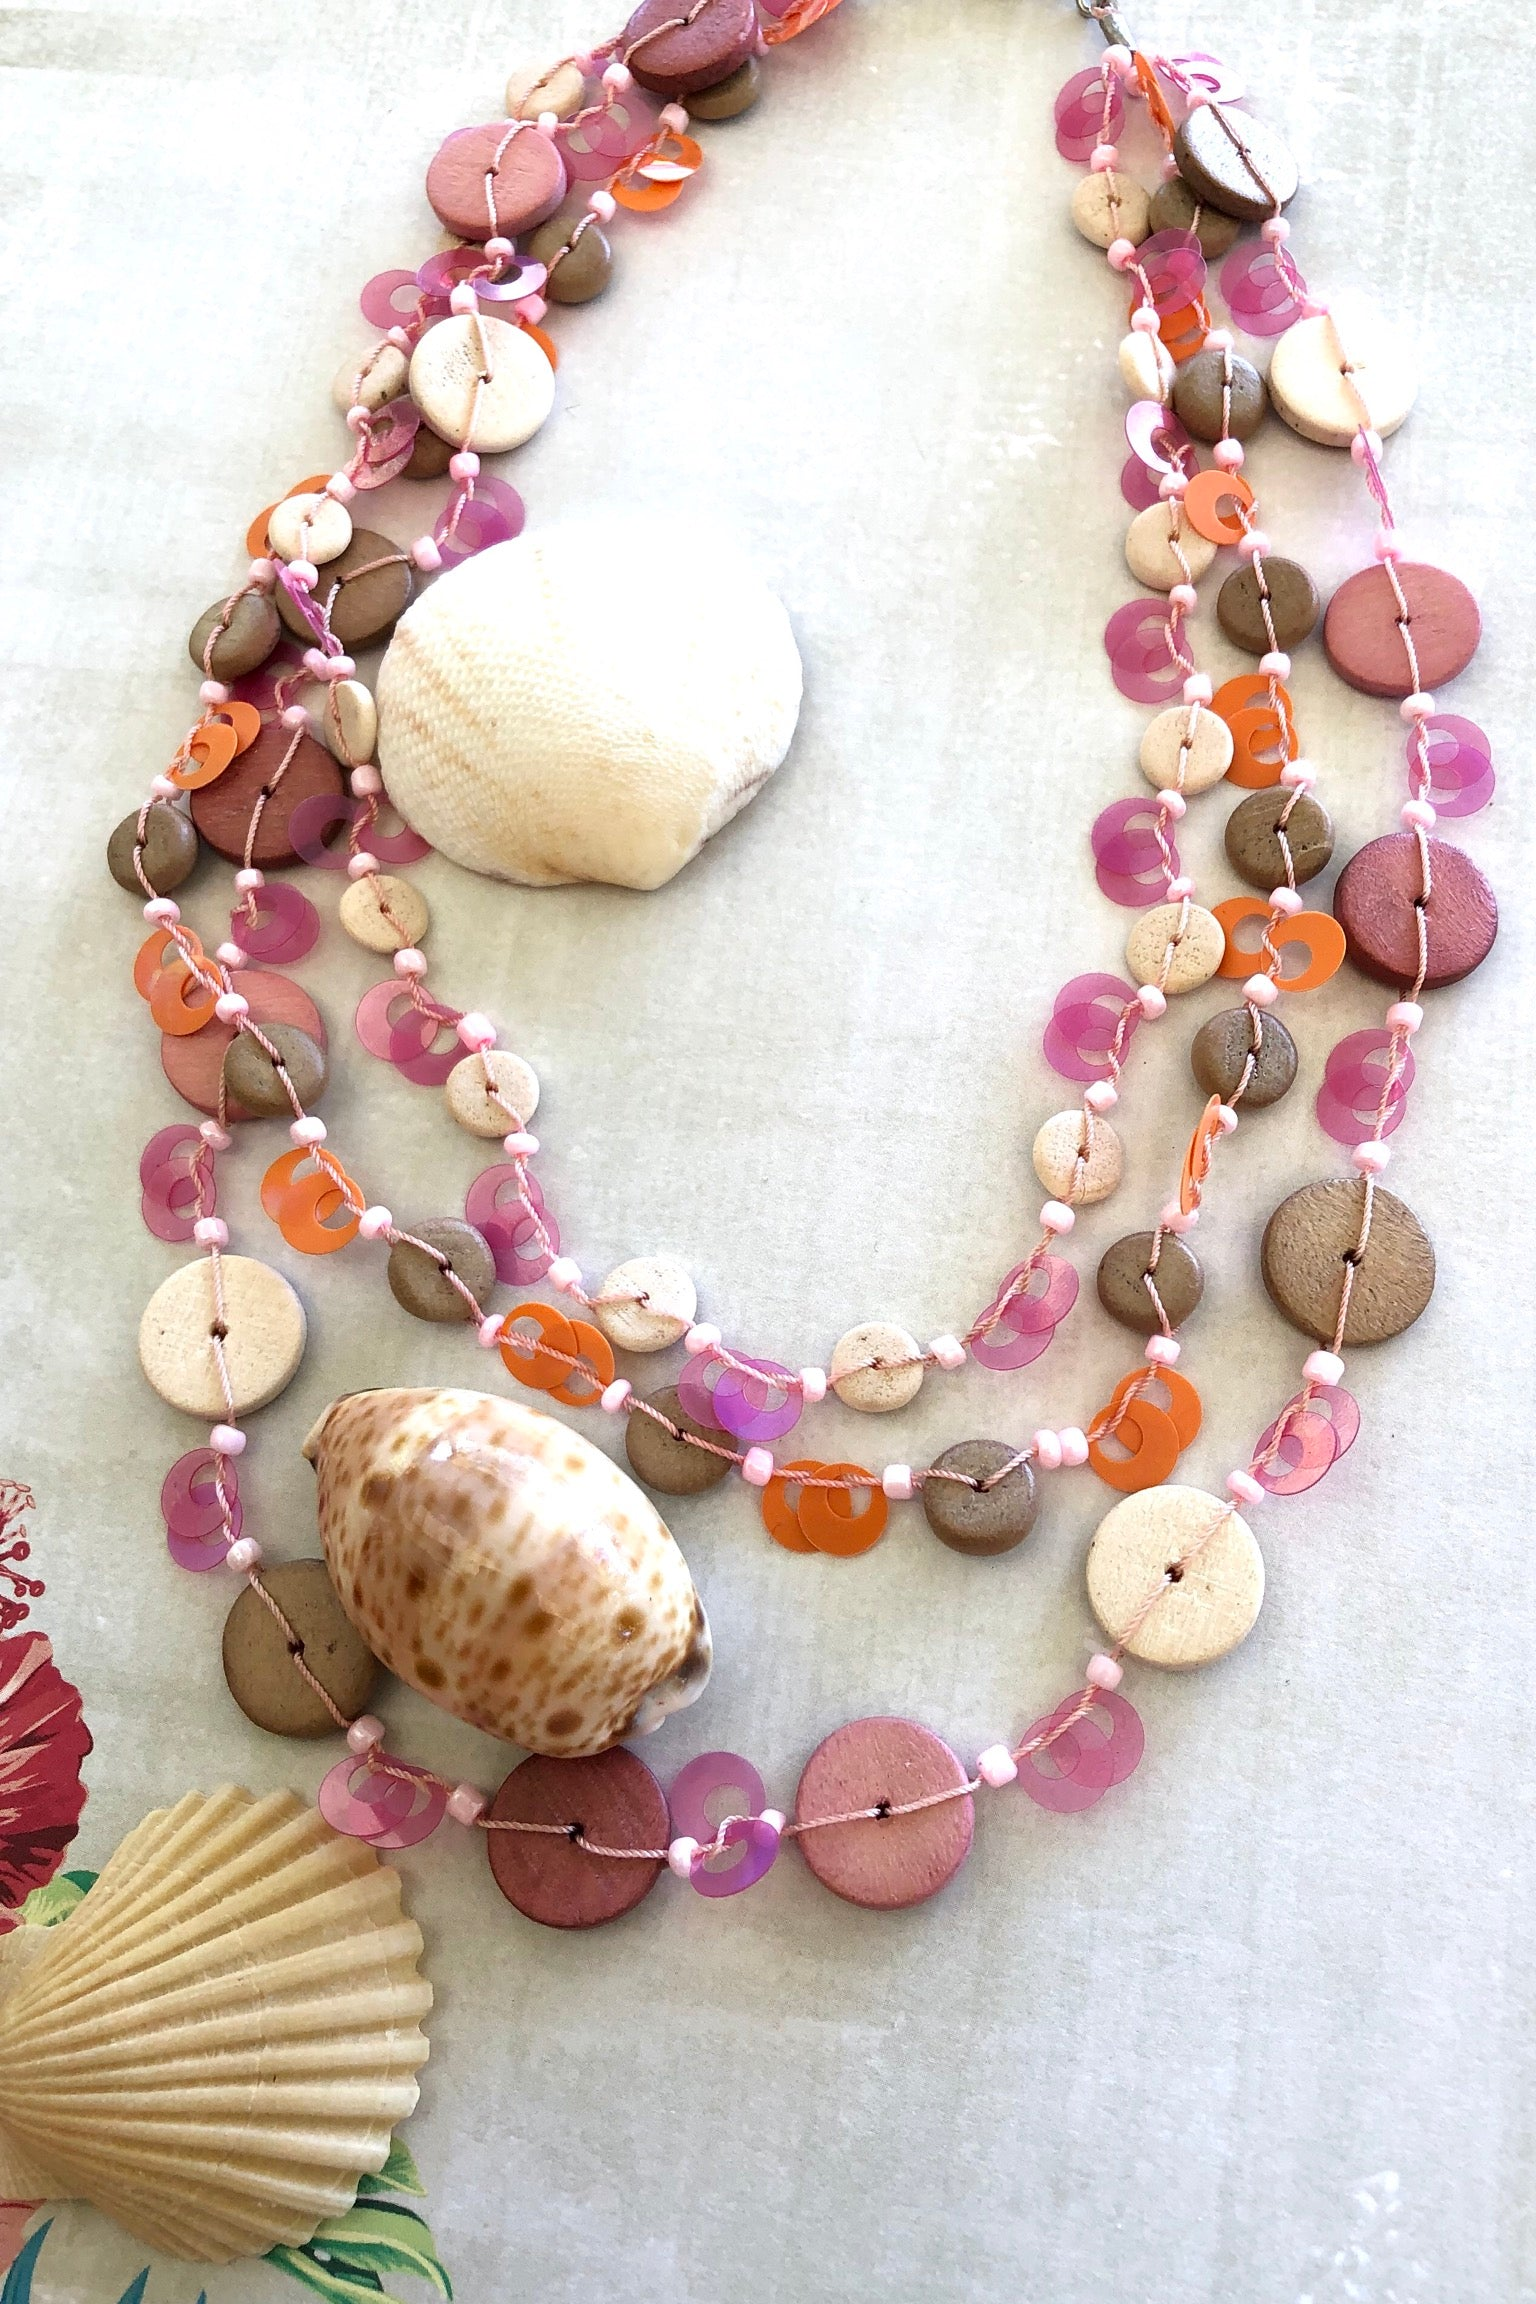 This three strand Necklace Coco Beach is made from hand cut coconut shell beads in pale Mauve pink and cream made in The Philippines.